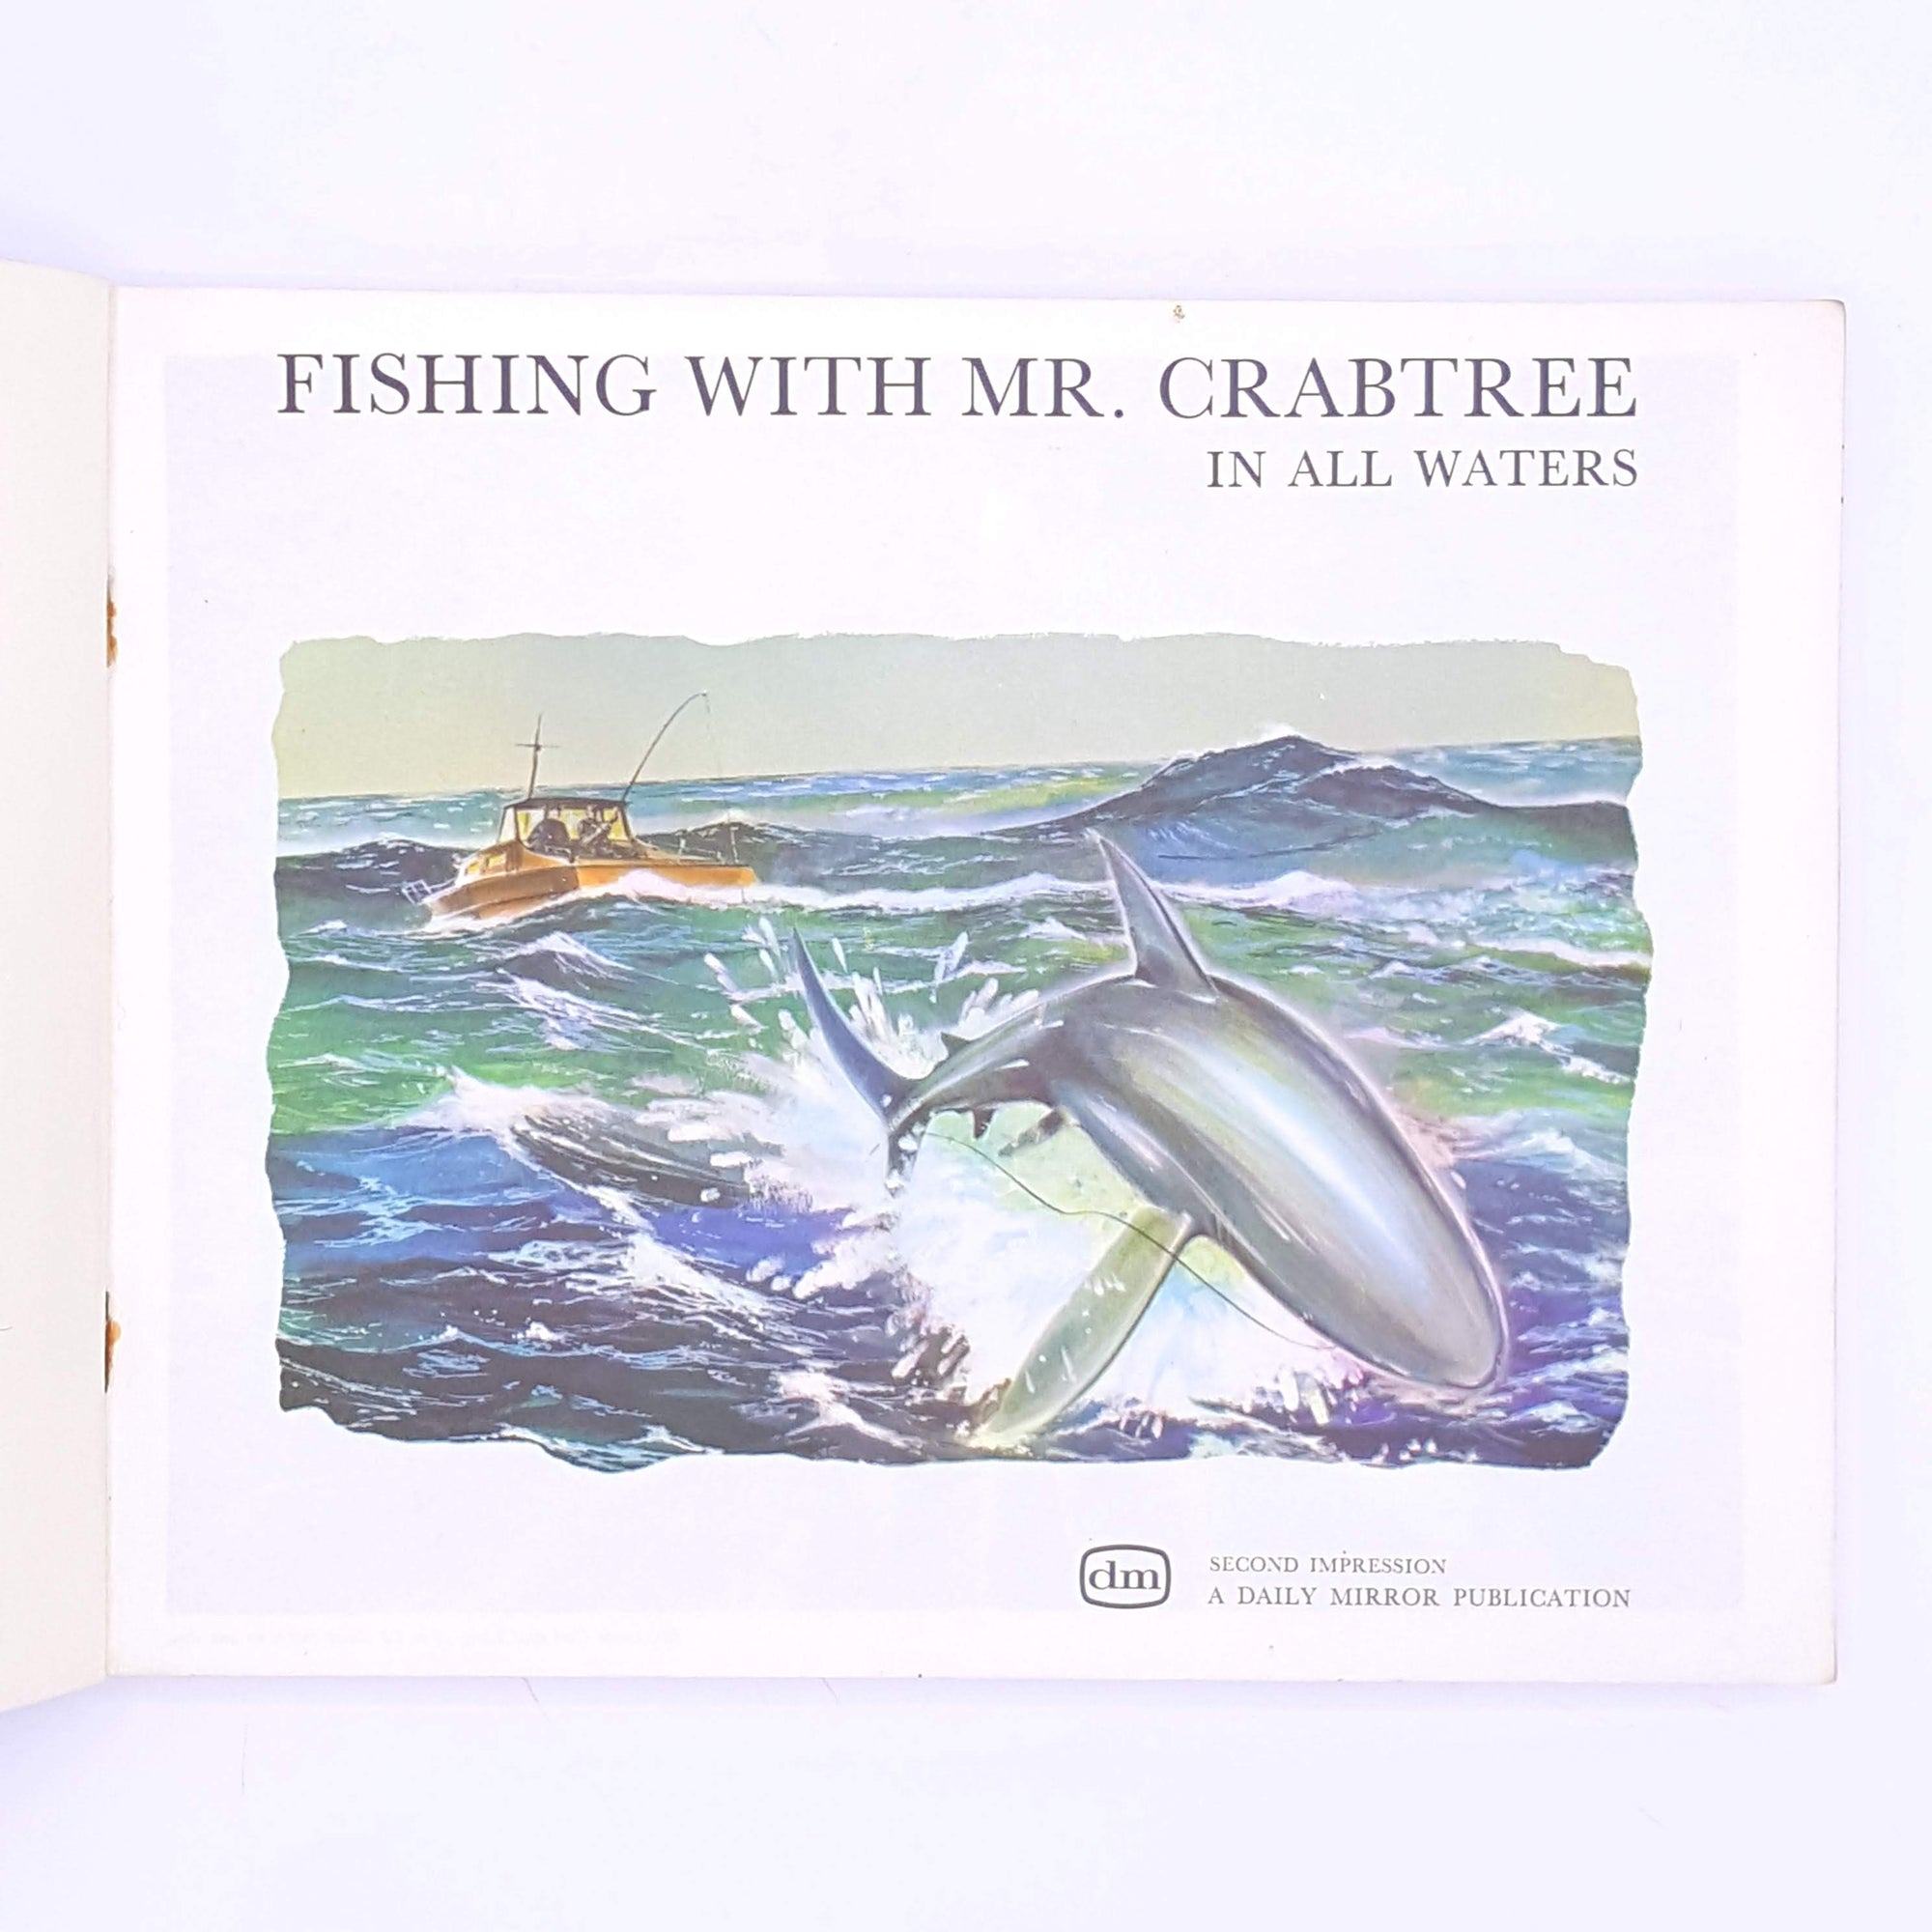 patterned-for-sports-fans-old-books-fish-antique-christmas-gifts-vintage-thrift-sport-country-house-library-decorative-angling-classic-Fishing-with-Mr-Crabtree-in-all-waters-fishing-for-him-